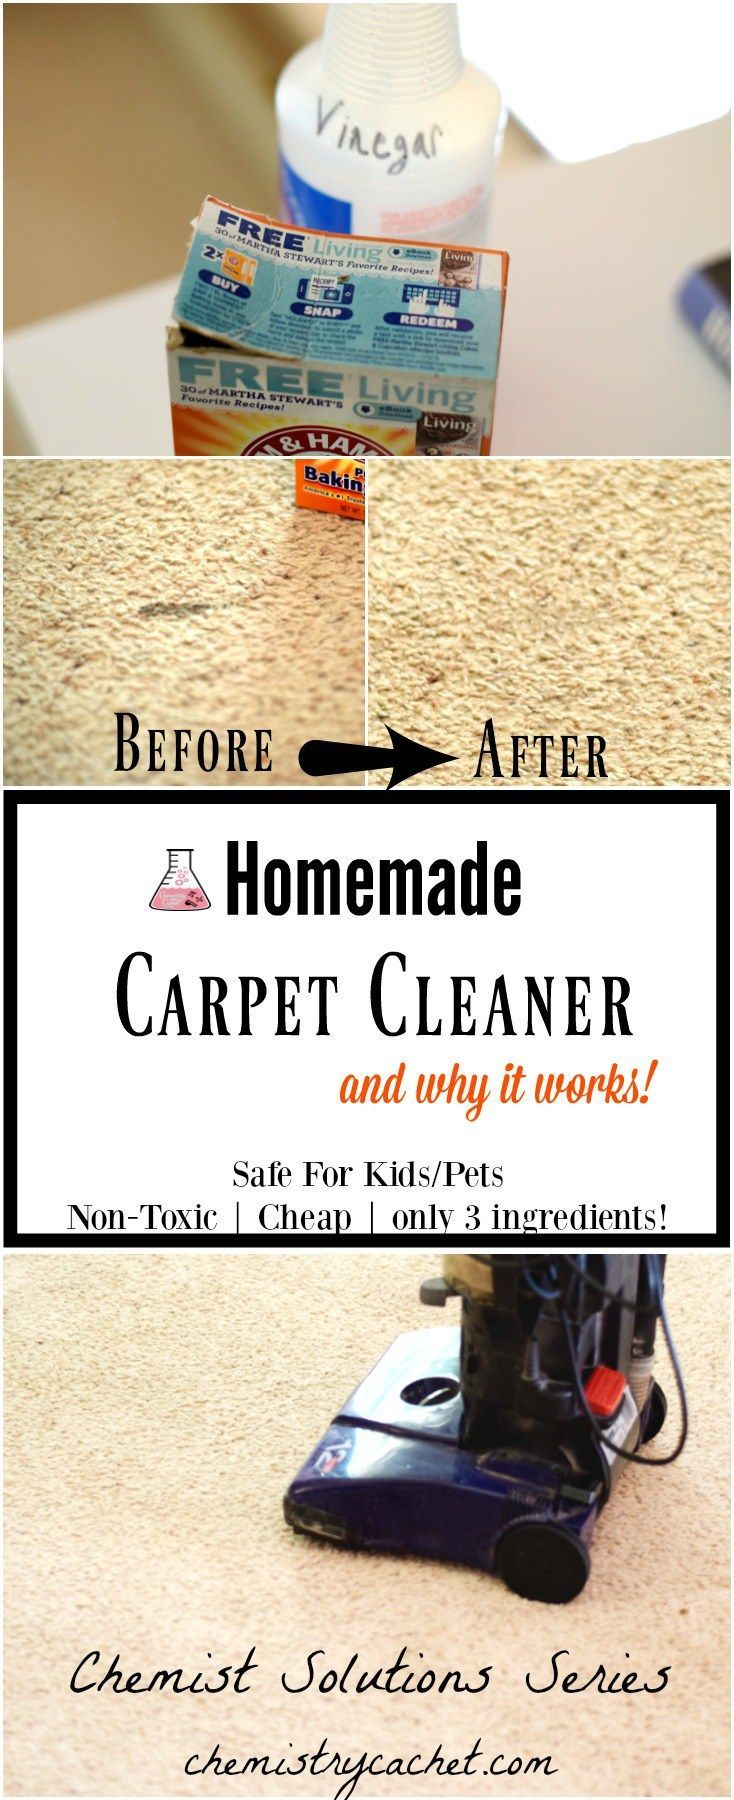 792 Best Natural Cleaning Images On Pinterest